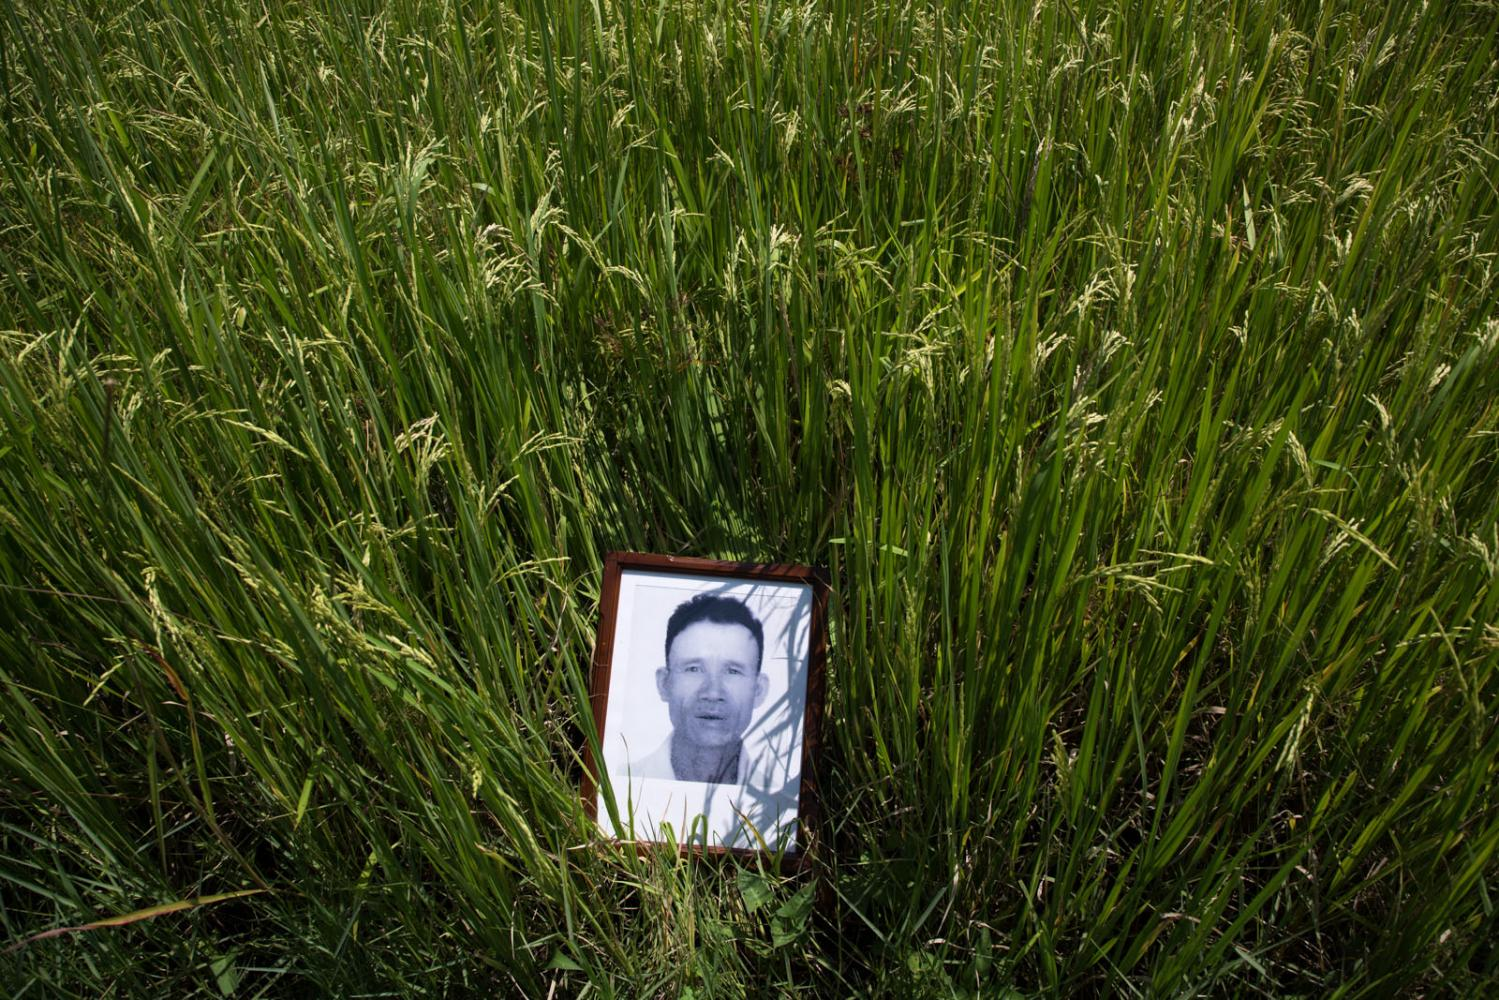 Nuan Daotad, Chairperson of Ban Sansaimoon Peasant Federation, Chiang Mai, was shot dead on 9 May 1976. A former boy scout and member of the Social Action Party, Mr. Nuan was part of the committee to control paddy field fees at the District level and expose official corruption.